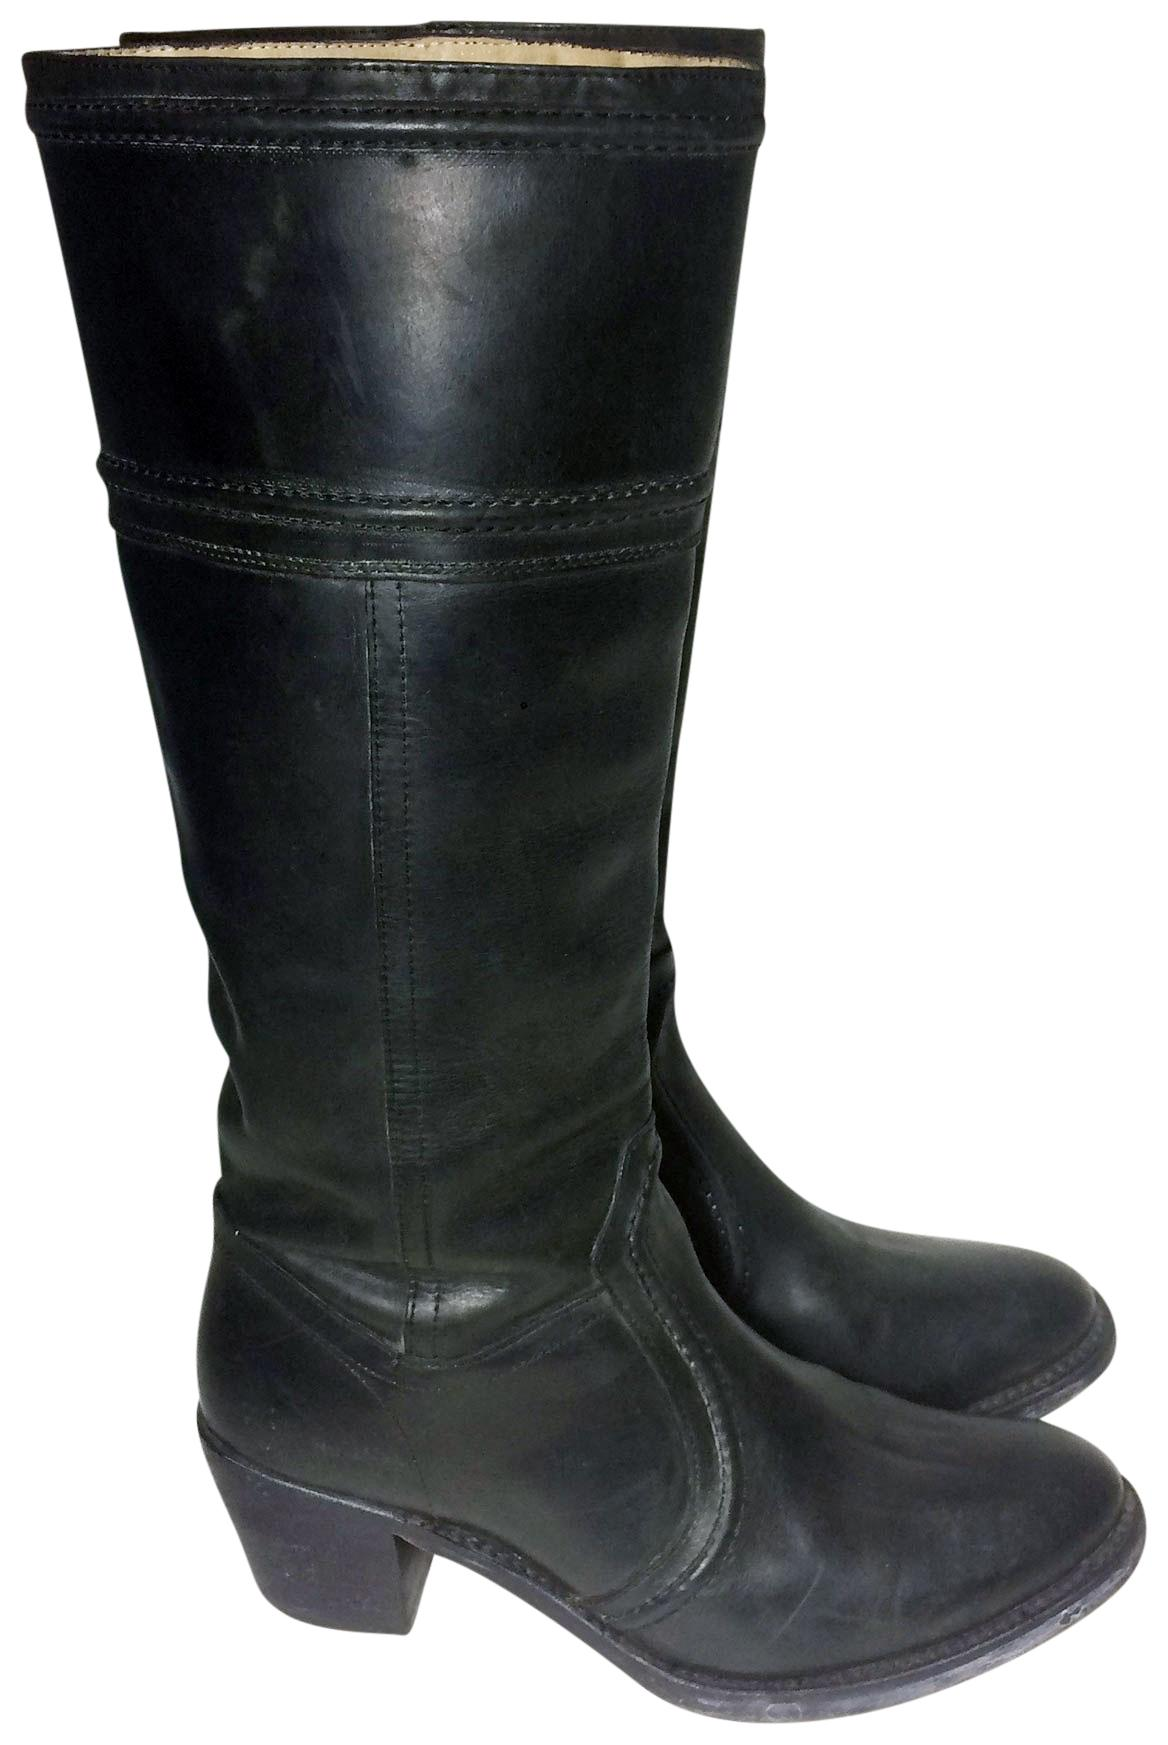 Frye Black 77219 Jane 14l 14l Jane Leather Boots/Booties Size US 10 Regular (M, B) 71f554